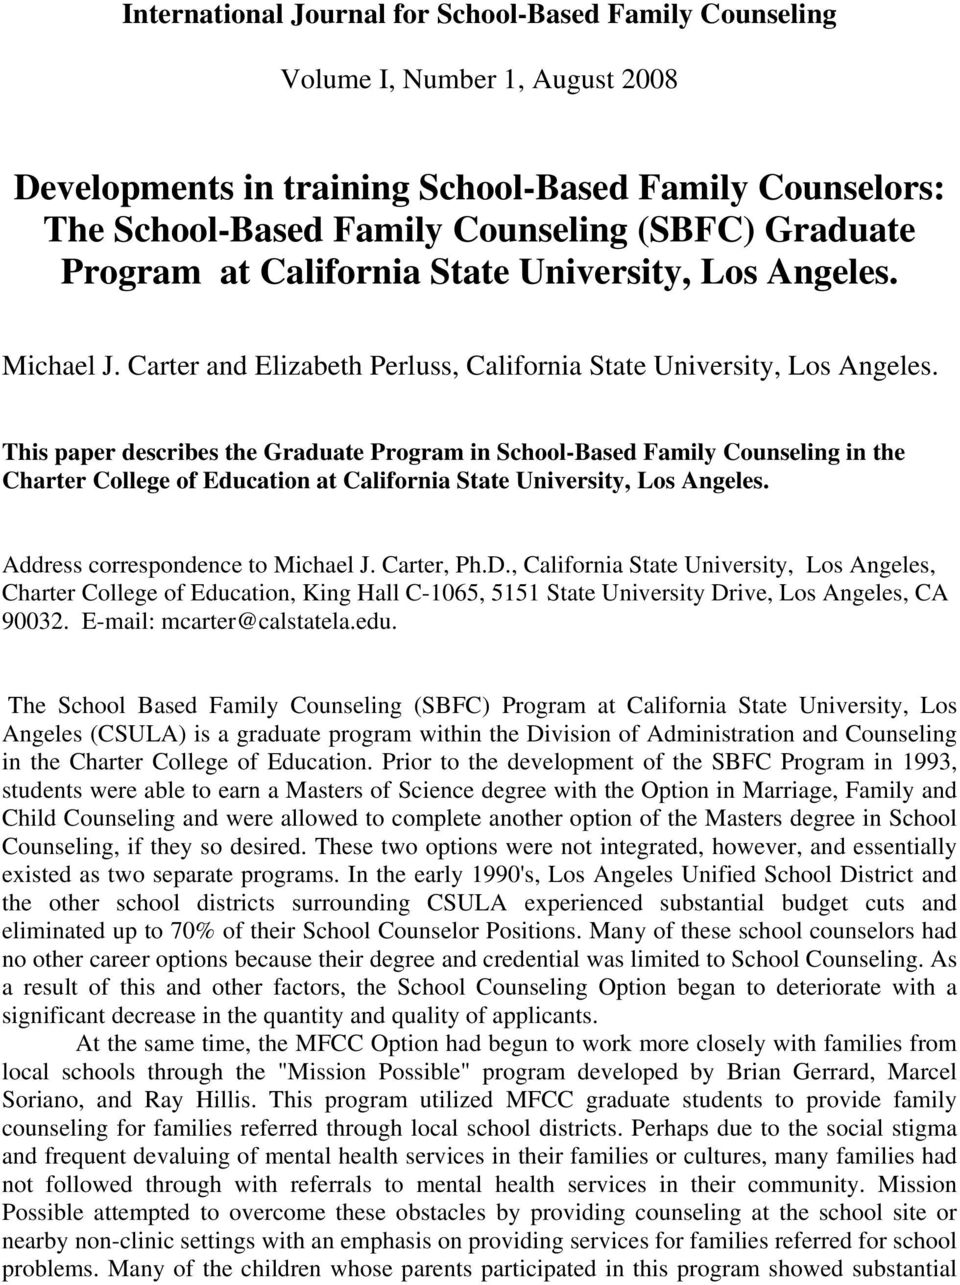 This paper describes the Graduate Program in School-Based Family Counseling in the Charter College of Education at California State University, Los Angeles. Address correspondence to Michael J.